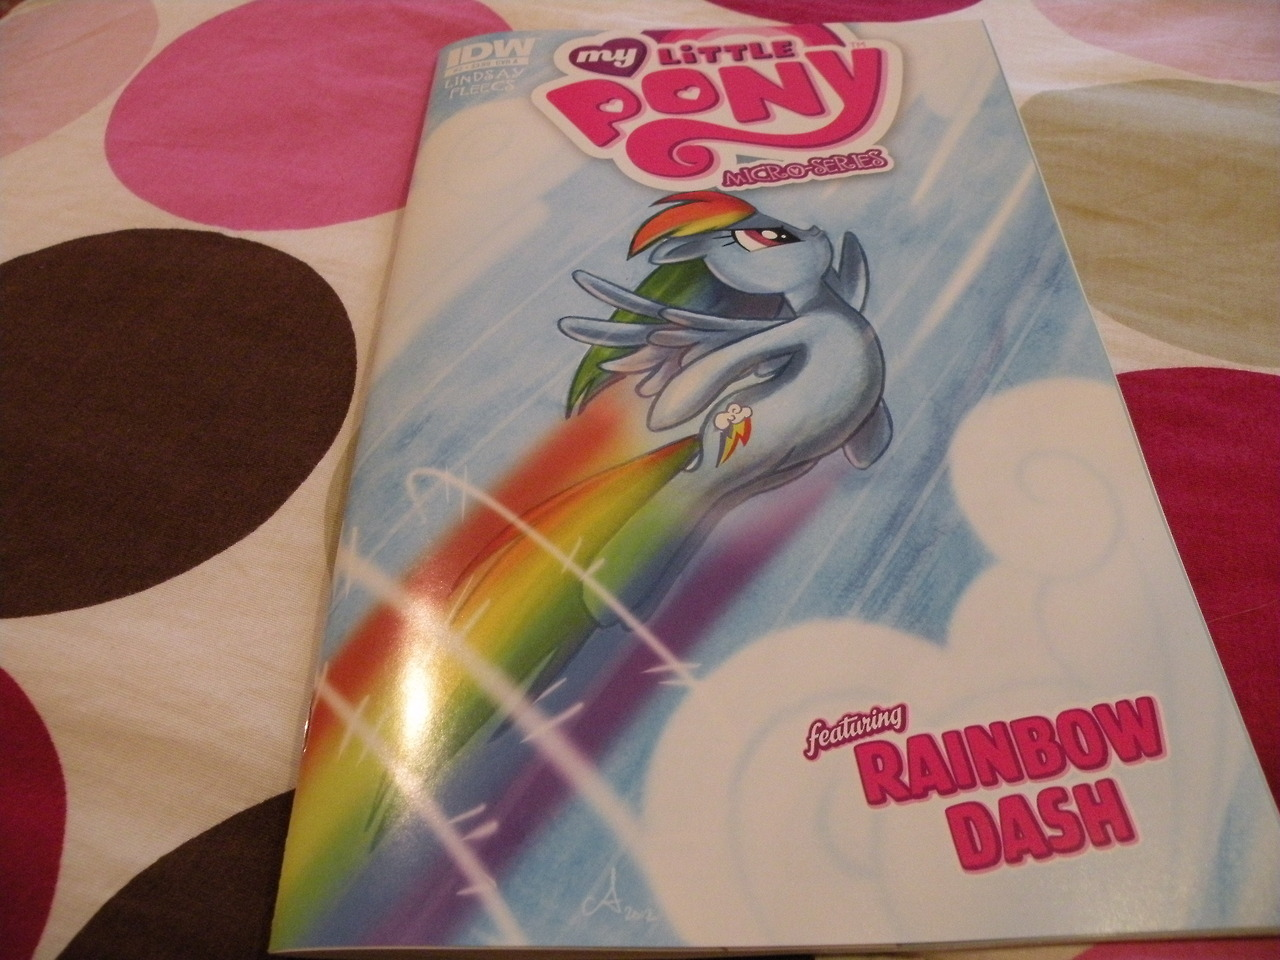 Rainbow Dash comic! Comic #2 of the micro series Price: $3.99 plus tax Where: Hastings Bad guys! Action! Rainbow Dash being conceited! It's all here. Dash really pushes my buttons sometimes. It seems like the dialogue is a little..odd in this one. There were several panels where I had to re-read to get what they were saying. There is some applejack scenes in this one too. Can't have dash without aj I guess. Rarity is next month! yay!